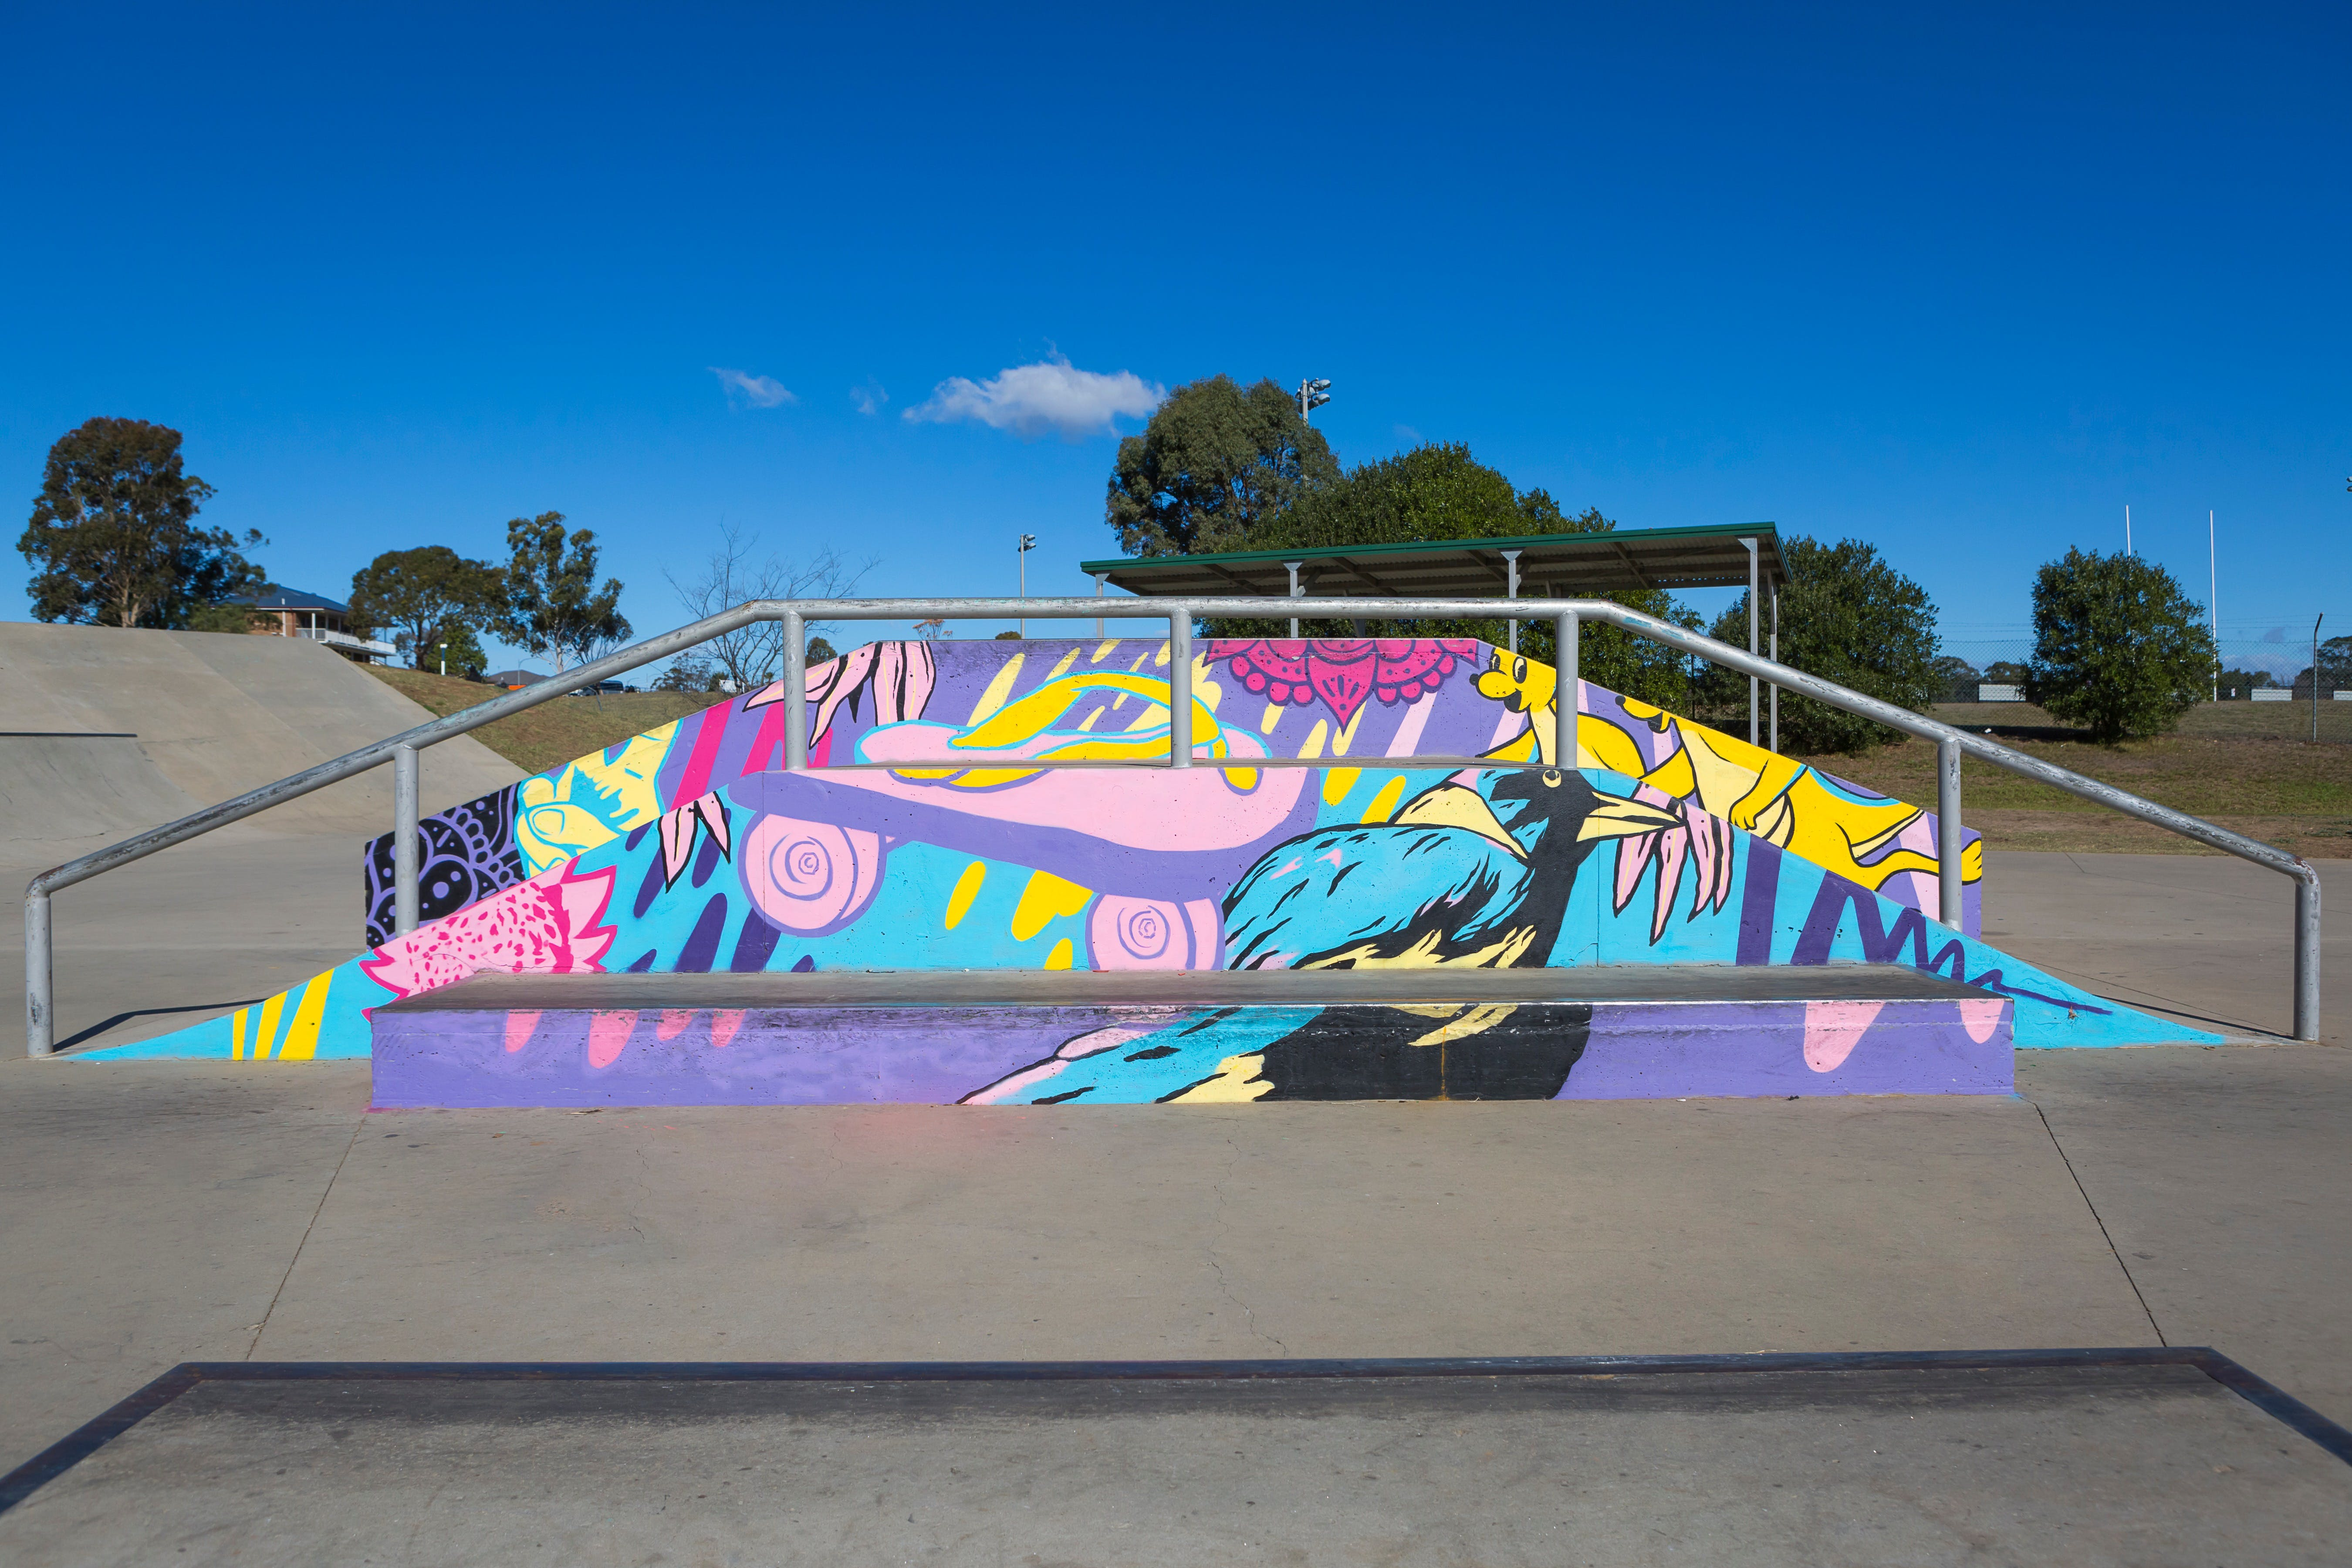 Kirkham Skate Park - Accommodation Perth